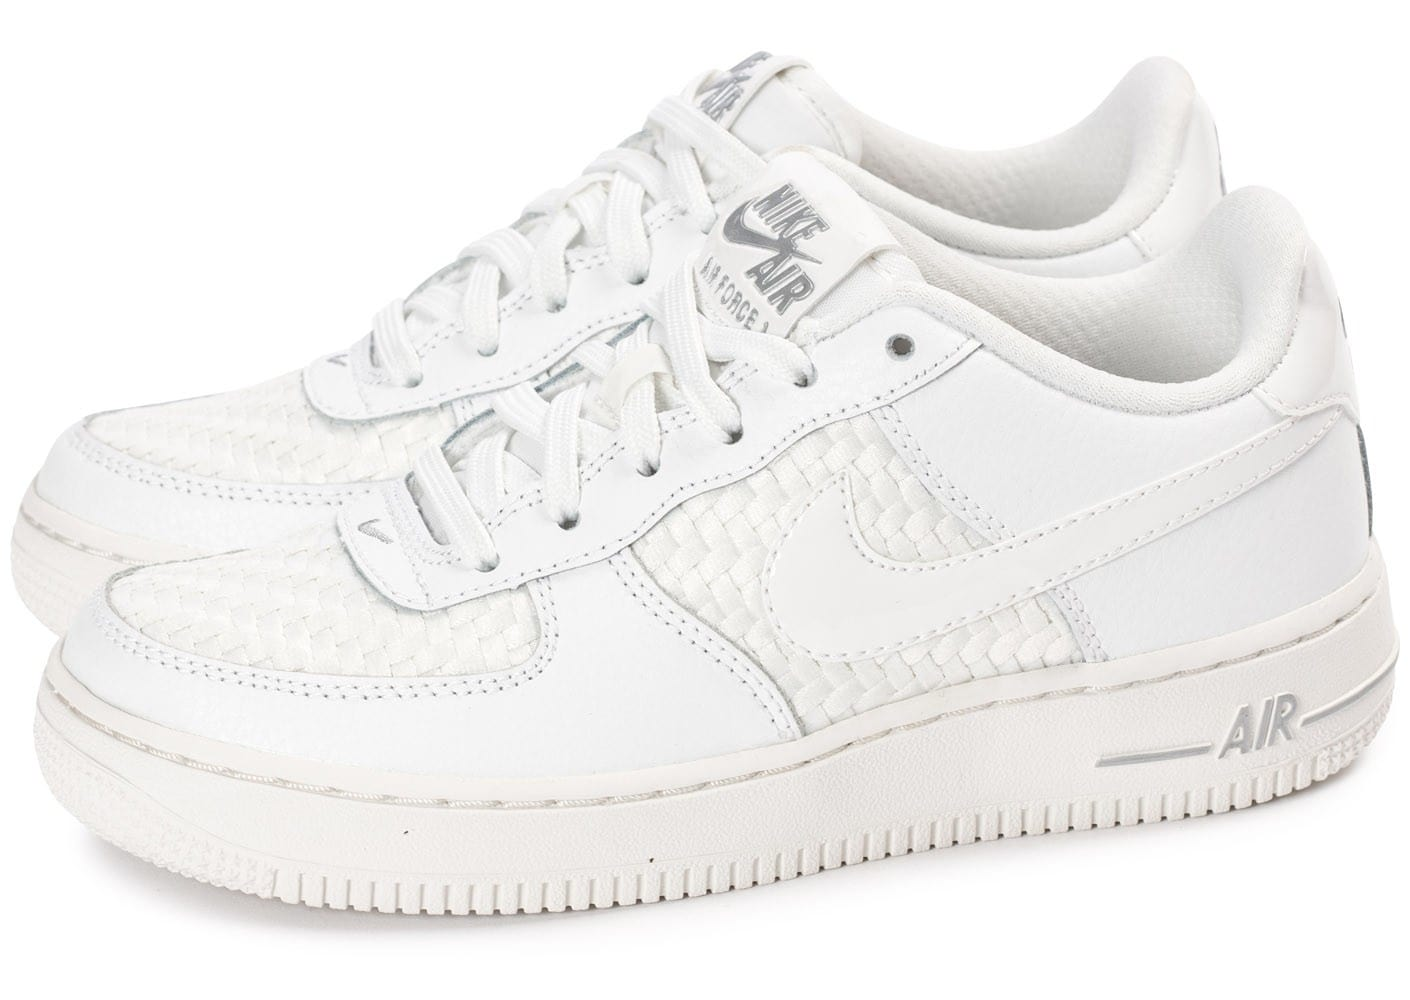 875e97d775c11b Nike AIR FORCE 1 LV8 GS BLANC blanc - Chaussures Basket Homme GH8HUA1Z -  destrainspourtous.fr